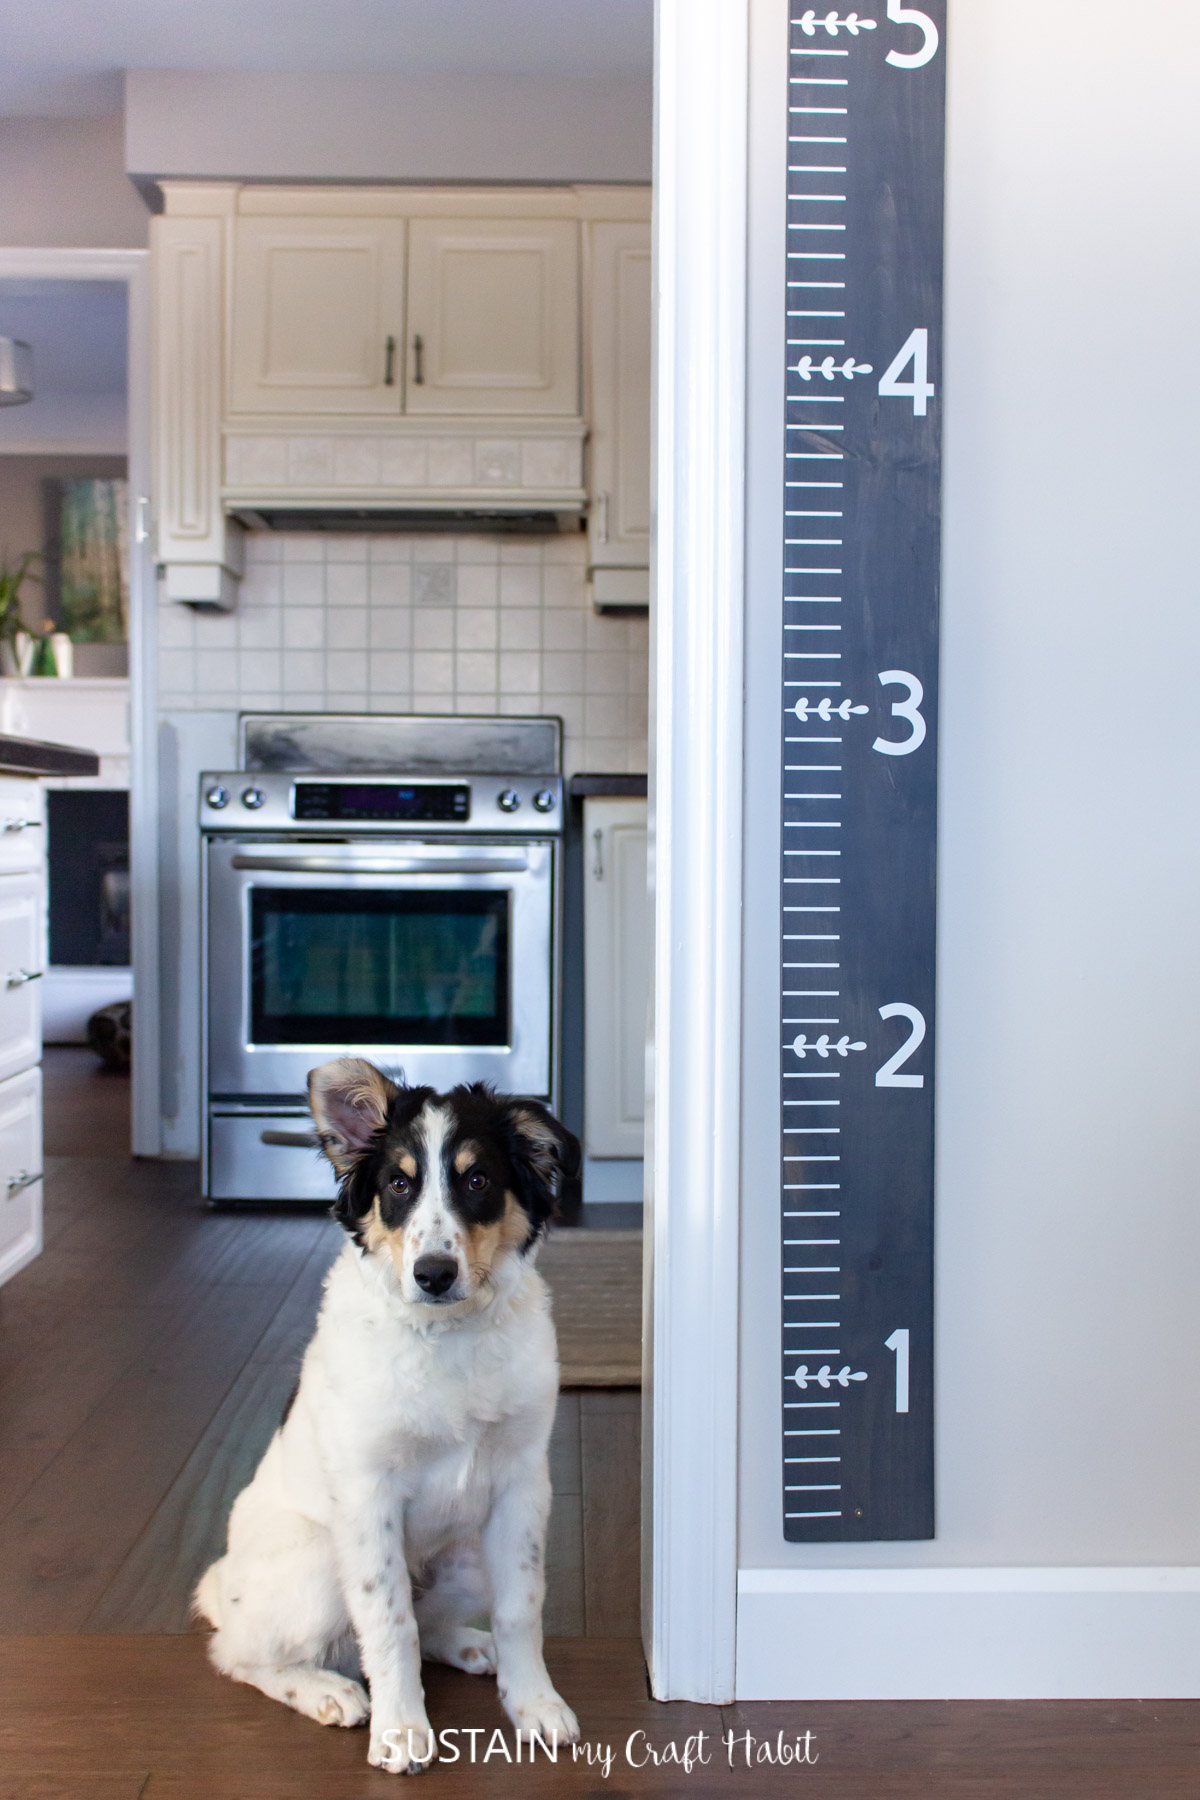 A DIY wood growth chart mounted on the wall by the kitchen. A dog is standing beside the simple woodworking project idea.